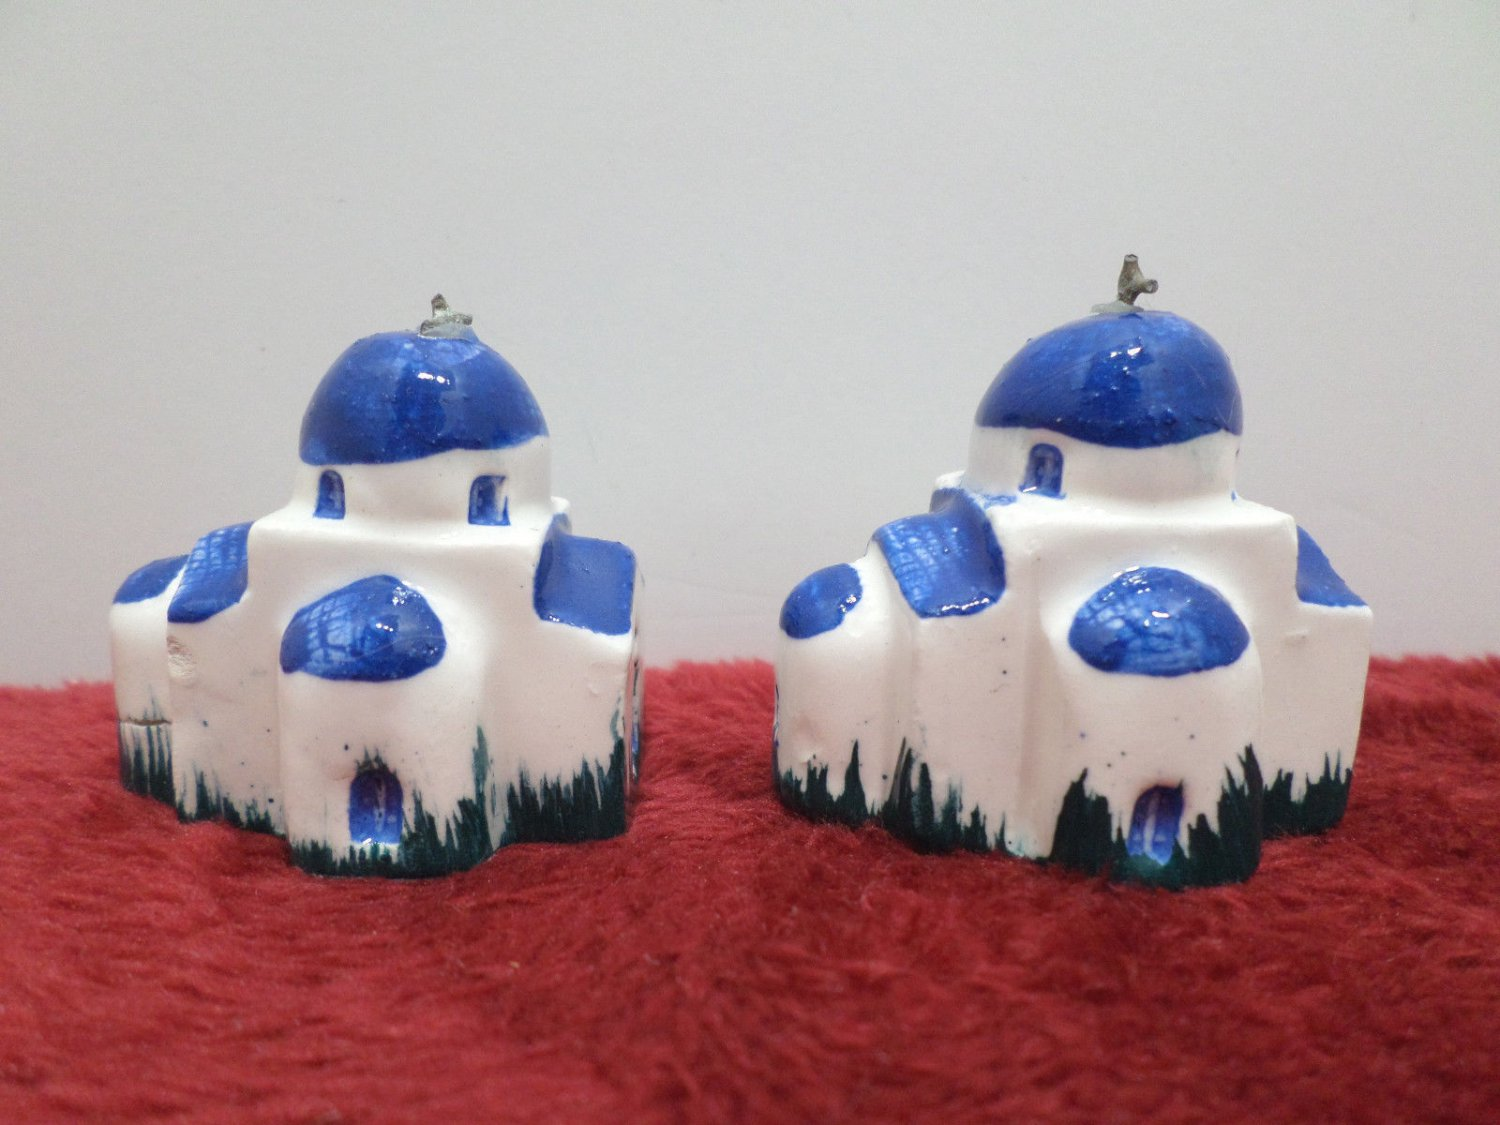 Two Mission Church Figurines Ceramic Blue and White Collectibles